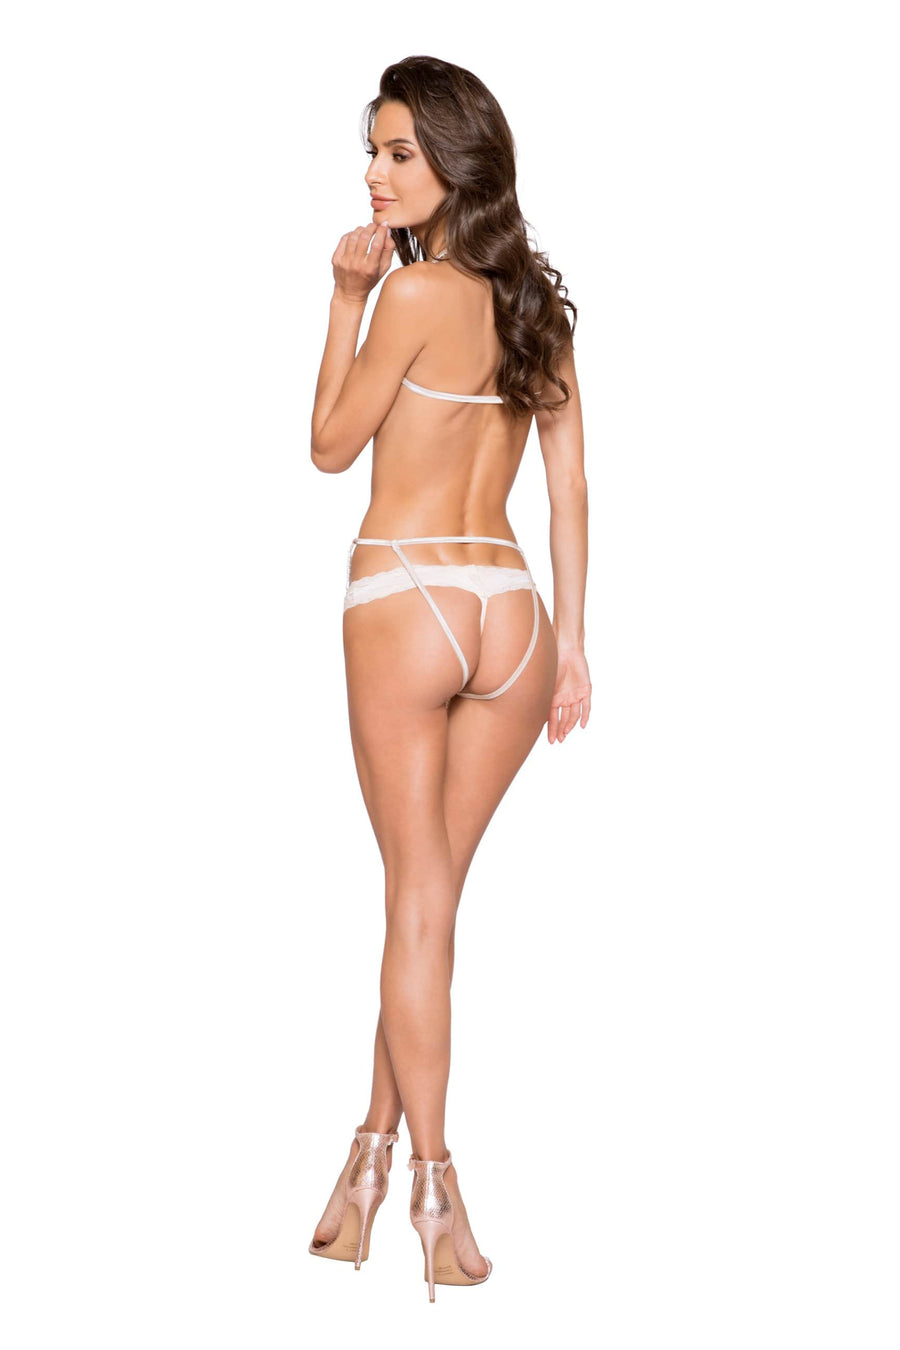 Roma S/M / Nude Beige Beaded Fringe Thong G-String Strappy Teddy SHC-LI297-BEIGE-S/M Apparel & Accessories > Clothing > One Pieces > Jumpsuits & Rompers